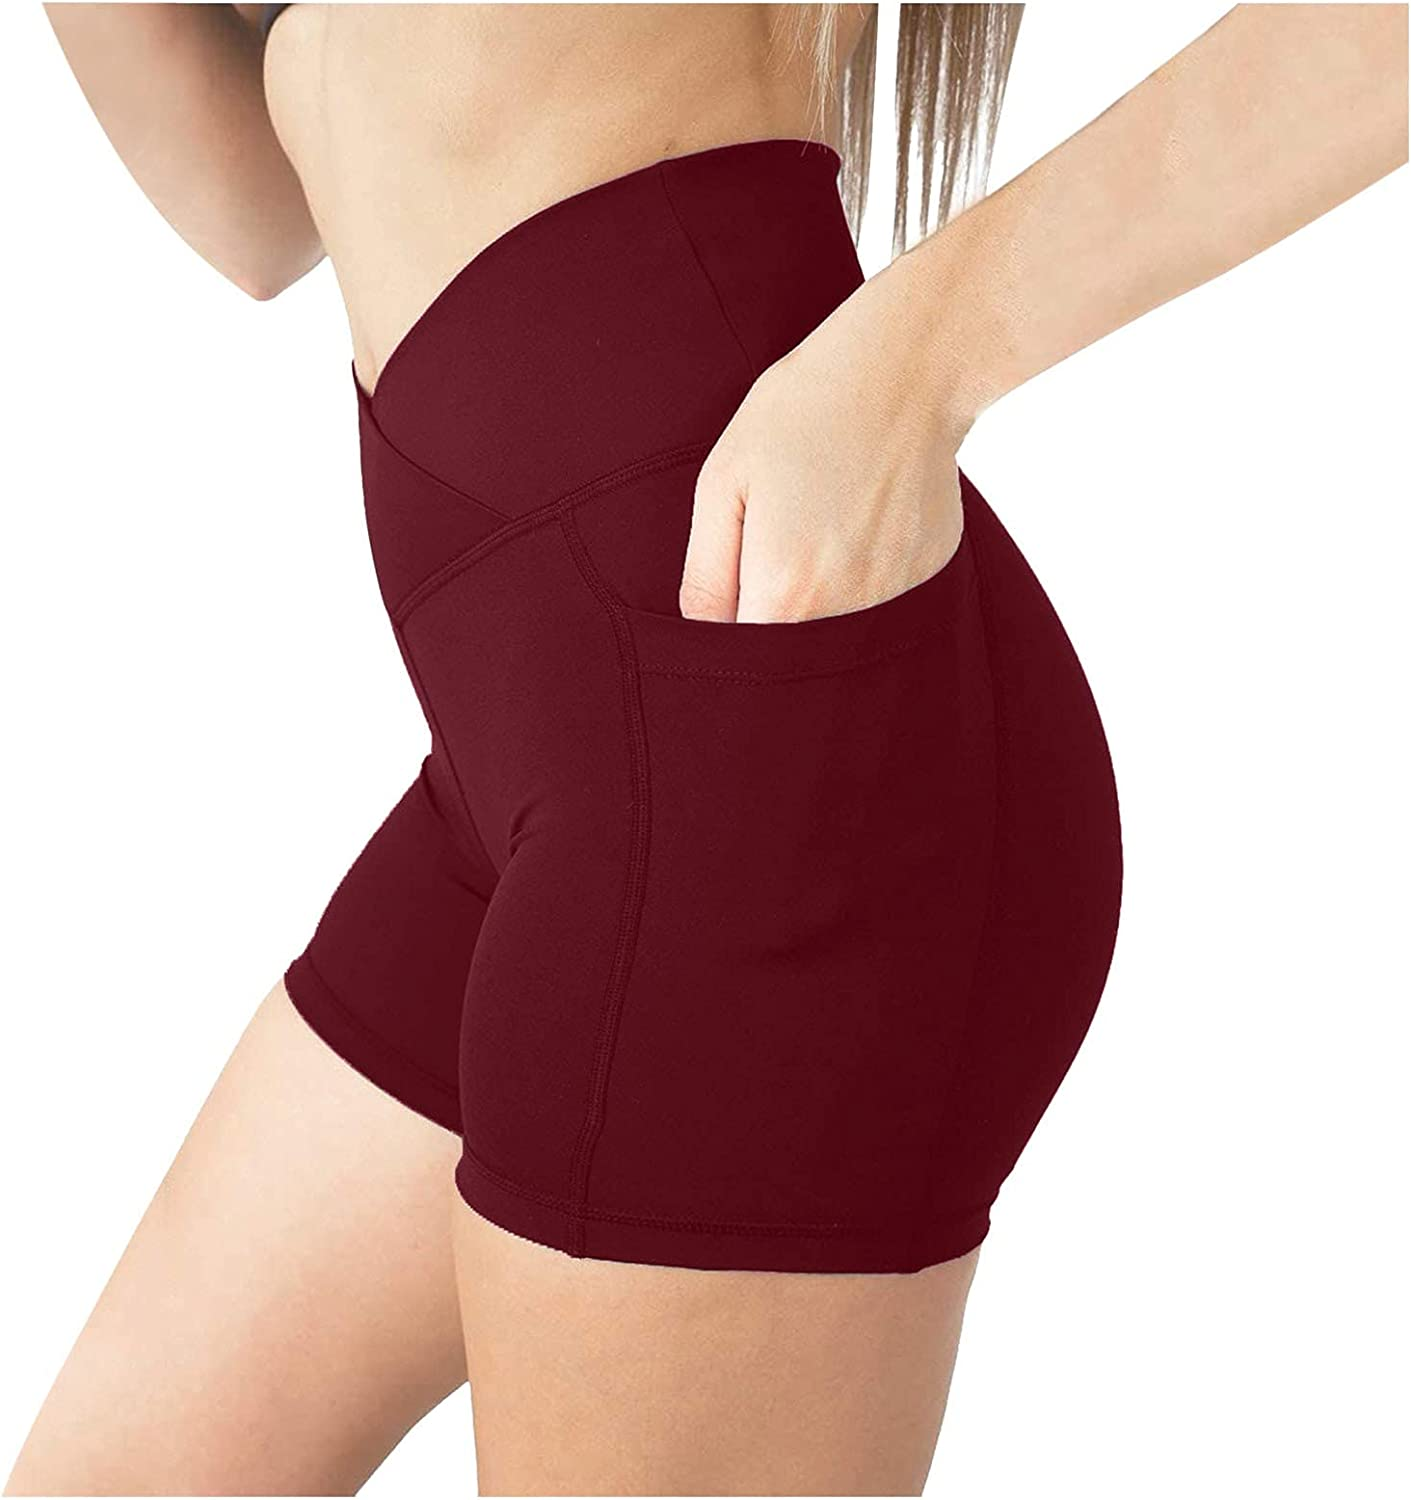 Exercise Dress for Women with Shorts, Summer Shorts for Women Linen High Waisted Shorts Casual Padded Bike Shorts